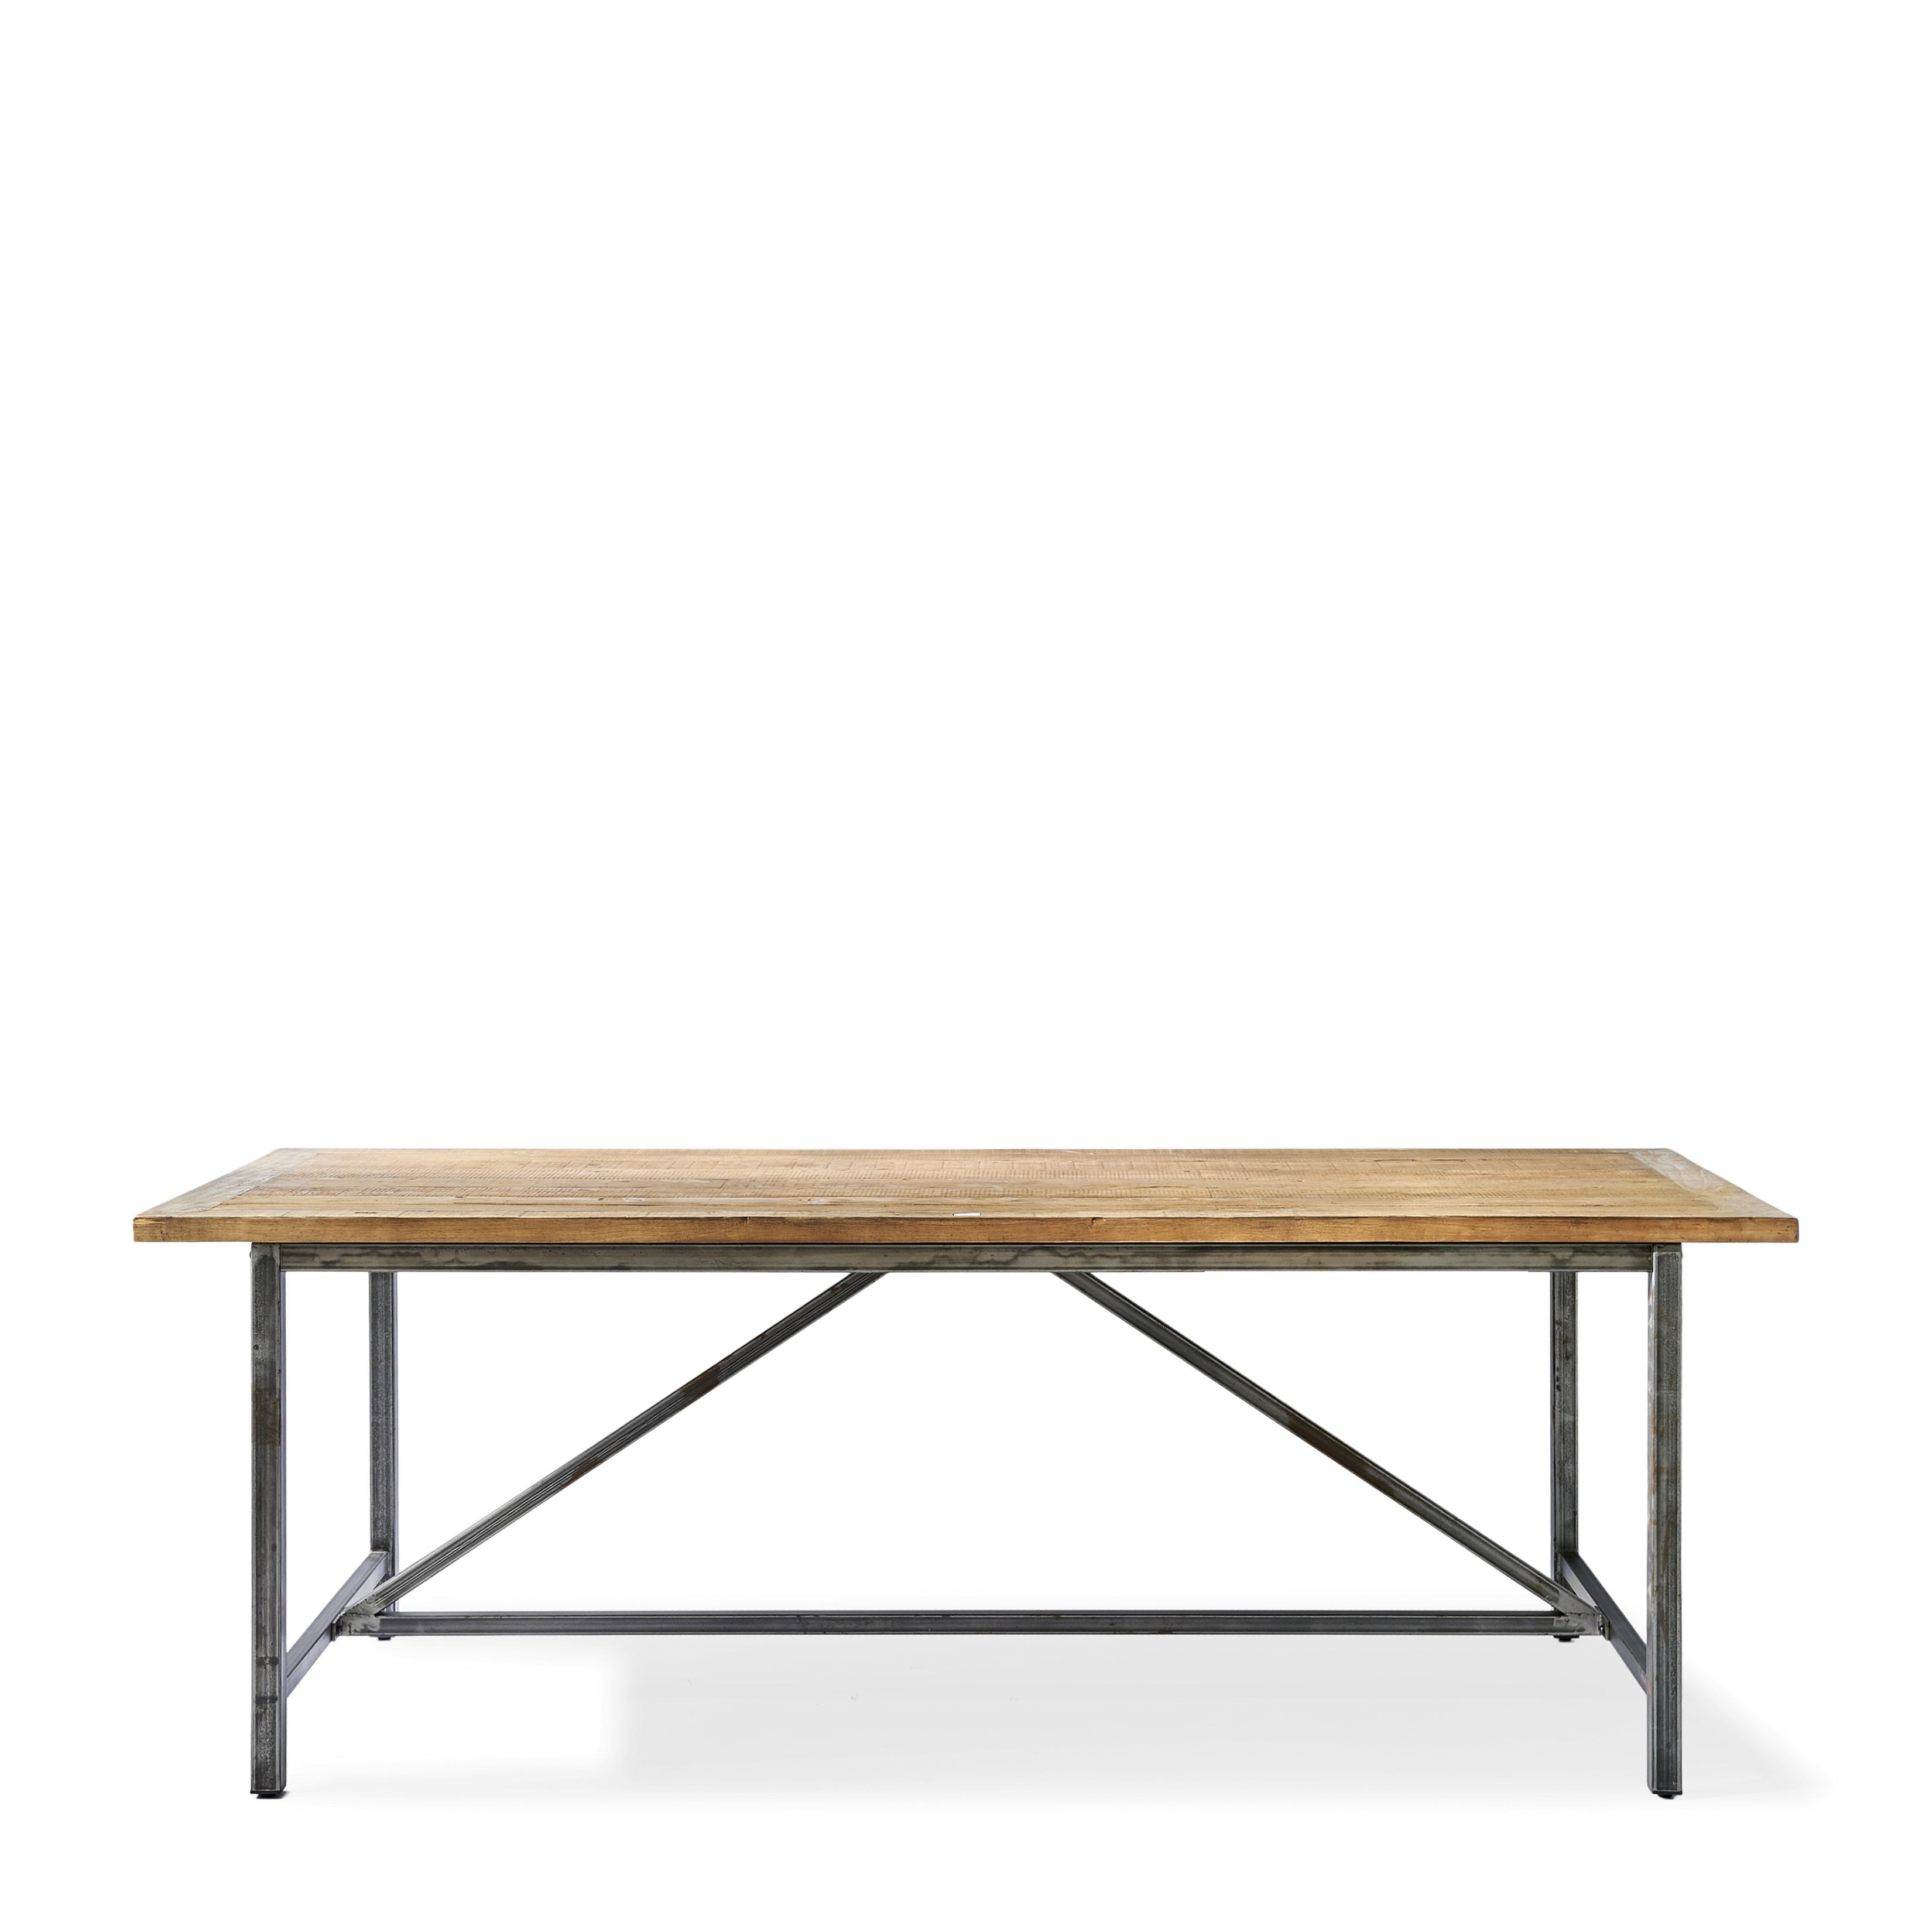 Arlington Dining Table 220x90 cm / Rivièra Maison